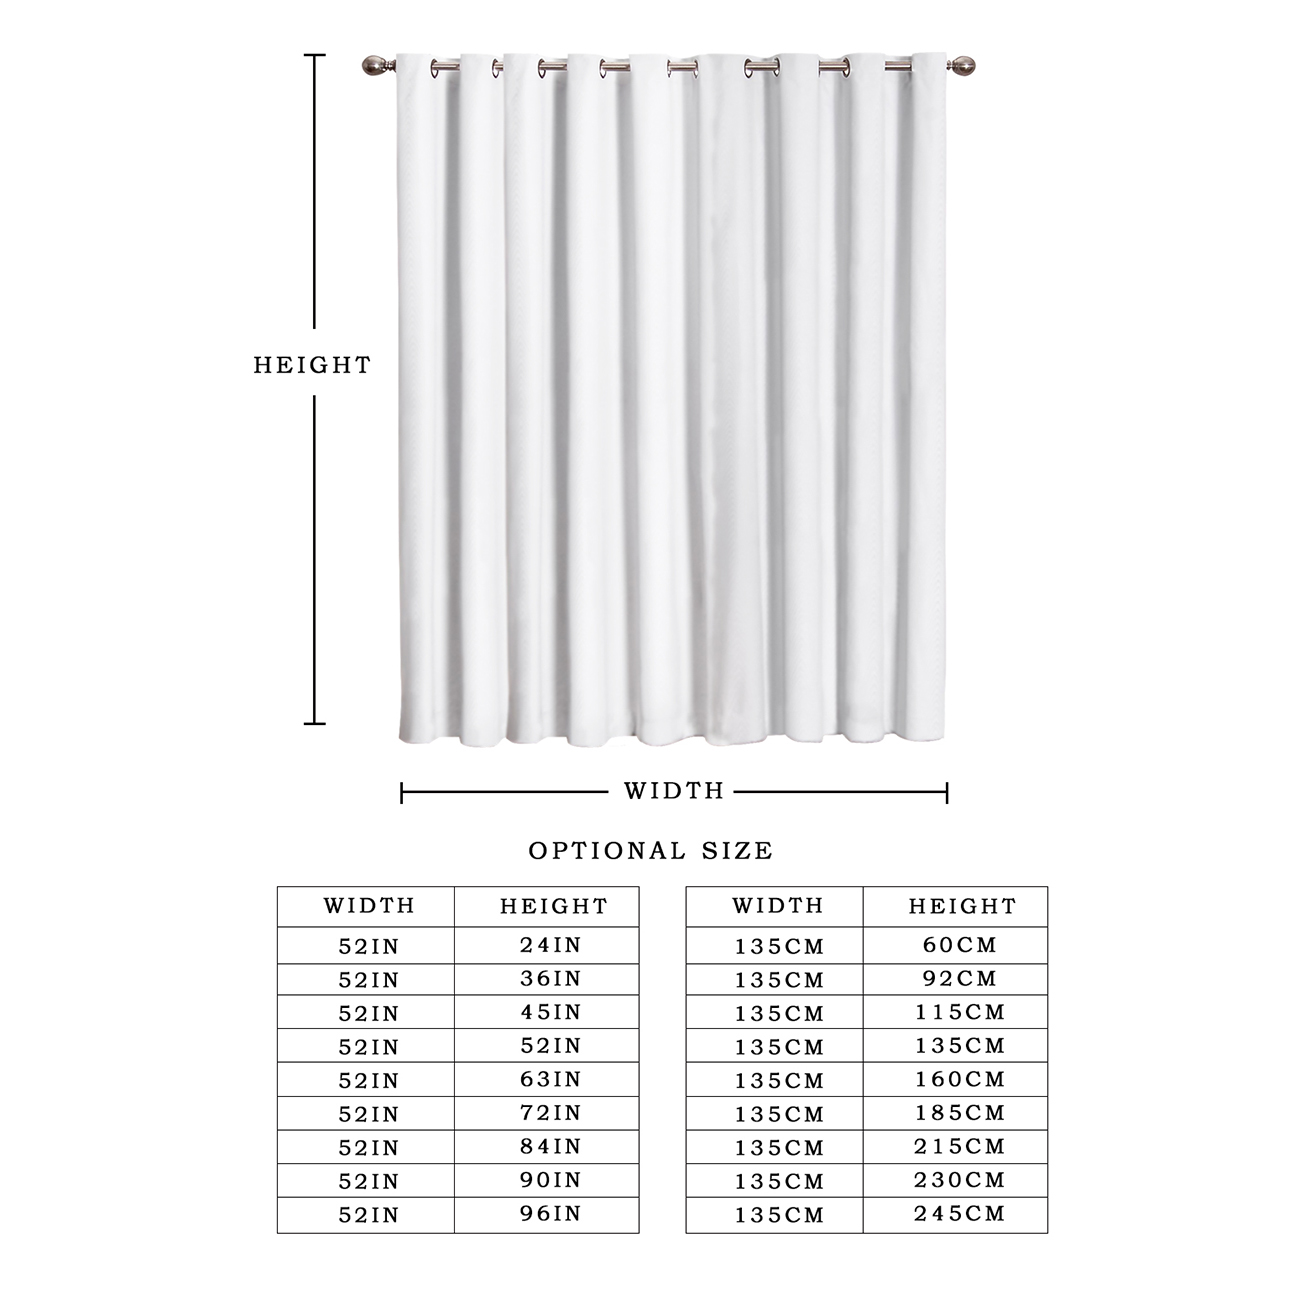 COCOHouse Islamic Religious Church Room Curtains Large Window Living Room Outdoor Decor Kids Window Treatment Hardware Sets